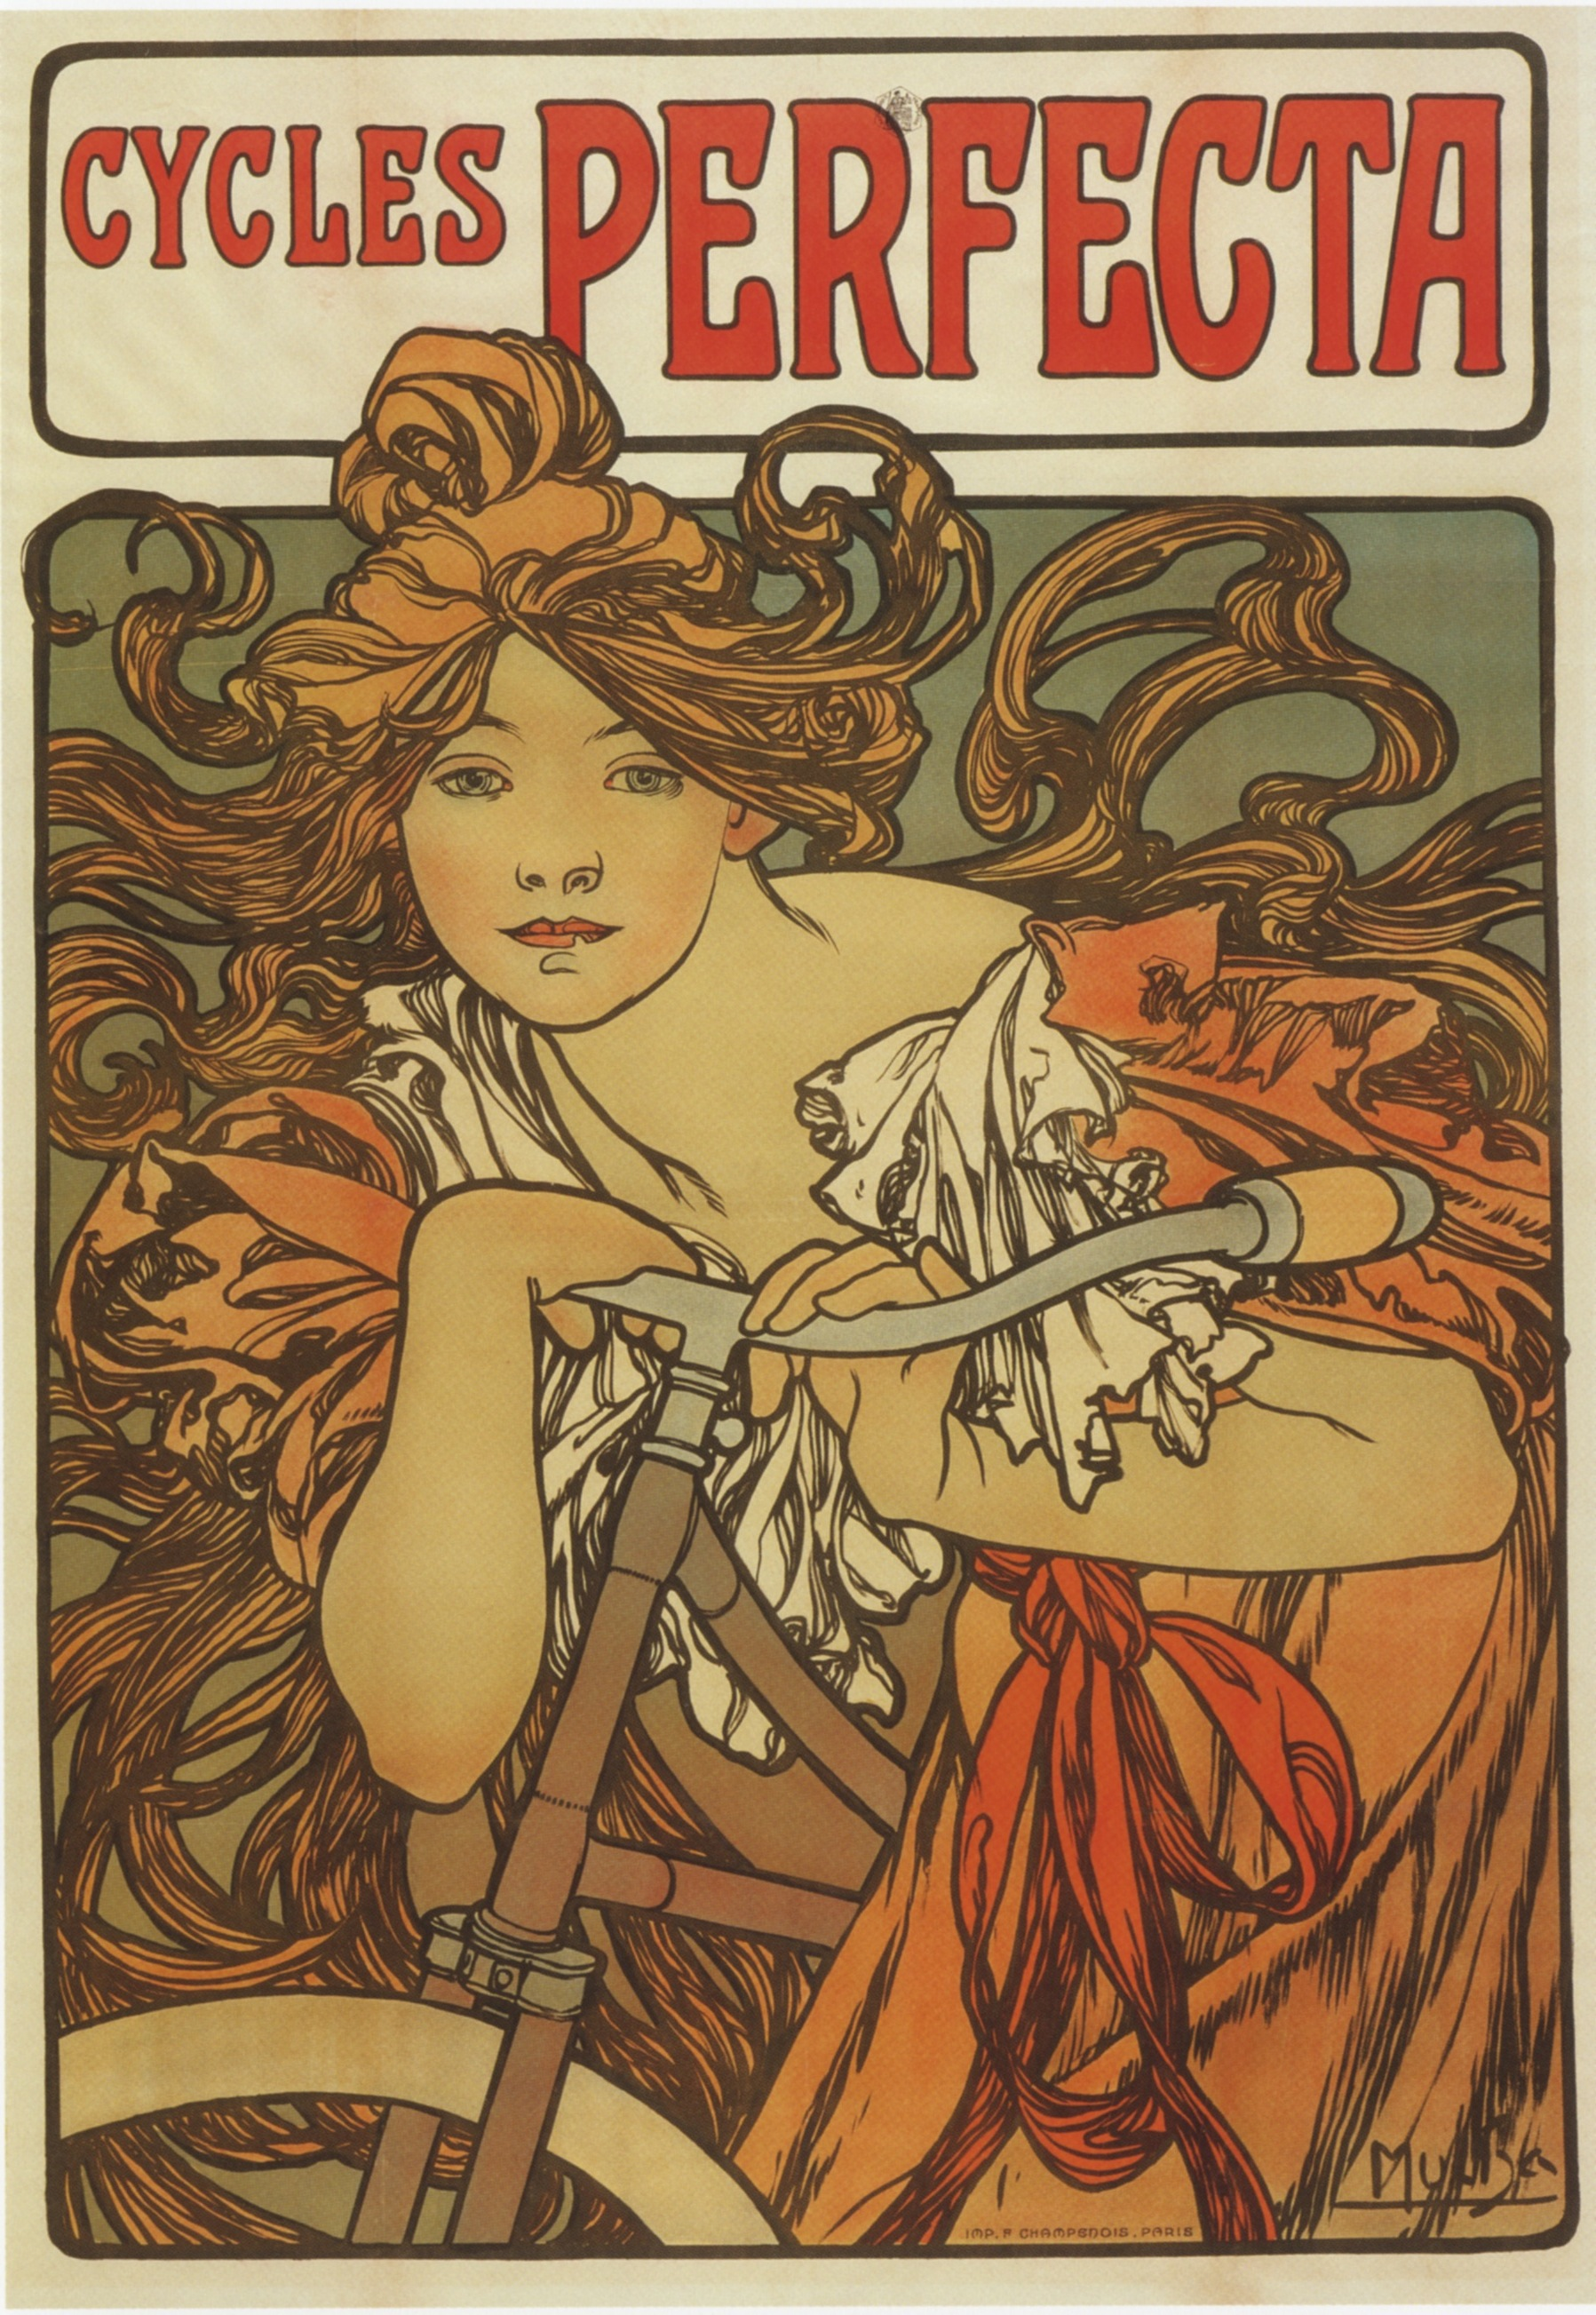 Alphonse Mucha, advertising poster for Cycles Perfecta, 1898.